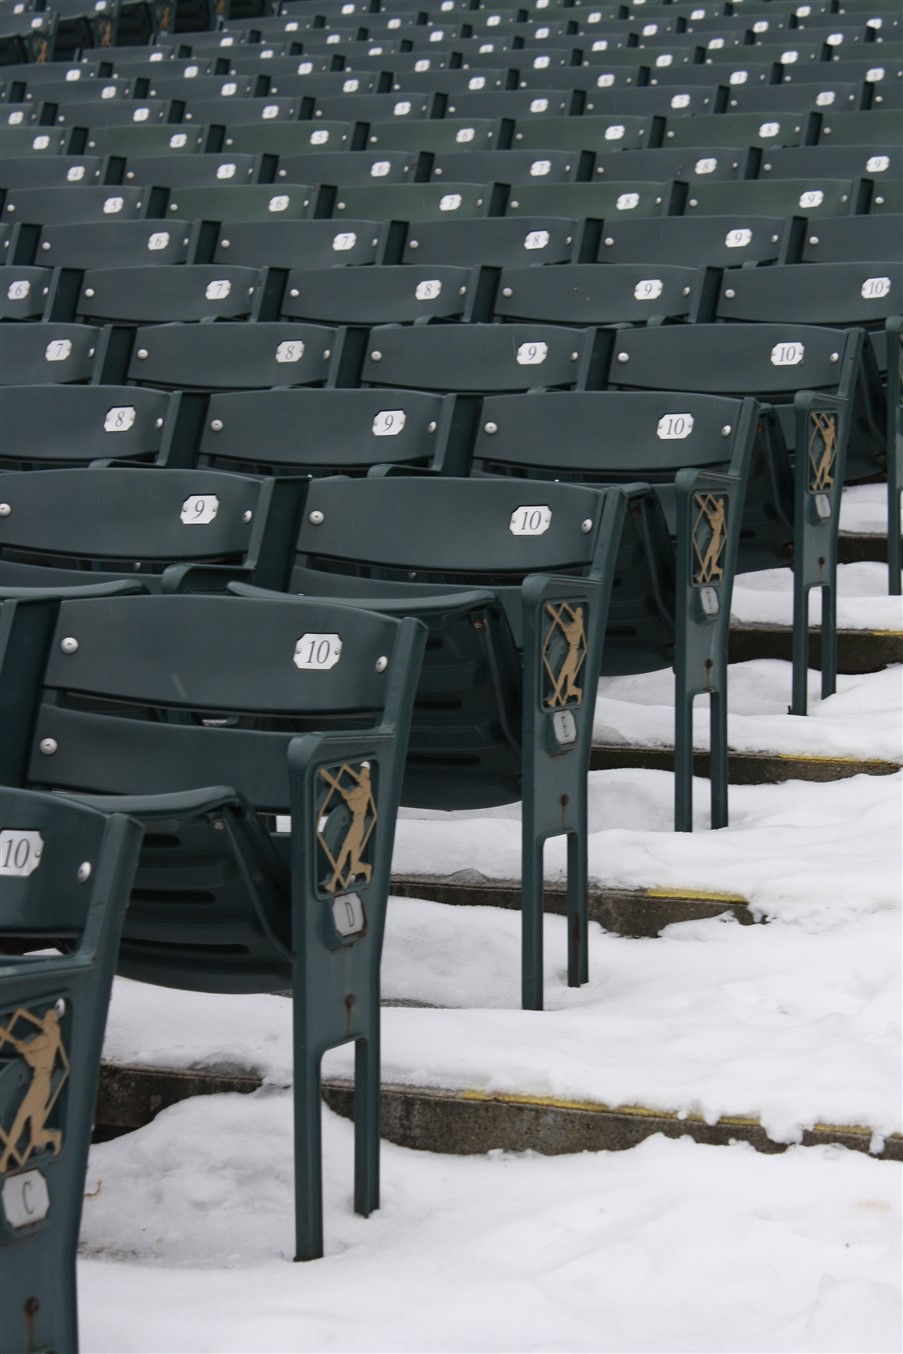 2010 12 27 Cleveland Jacobs Field Snow Days 14.jpg